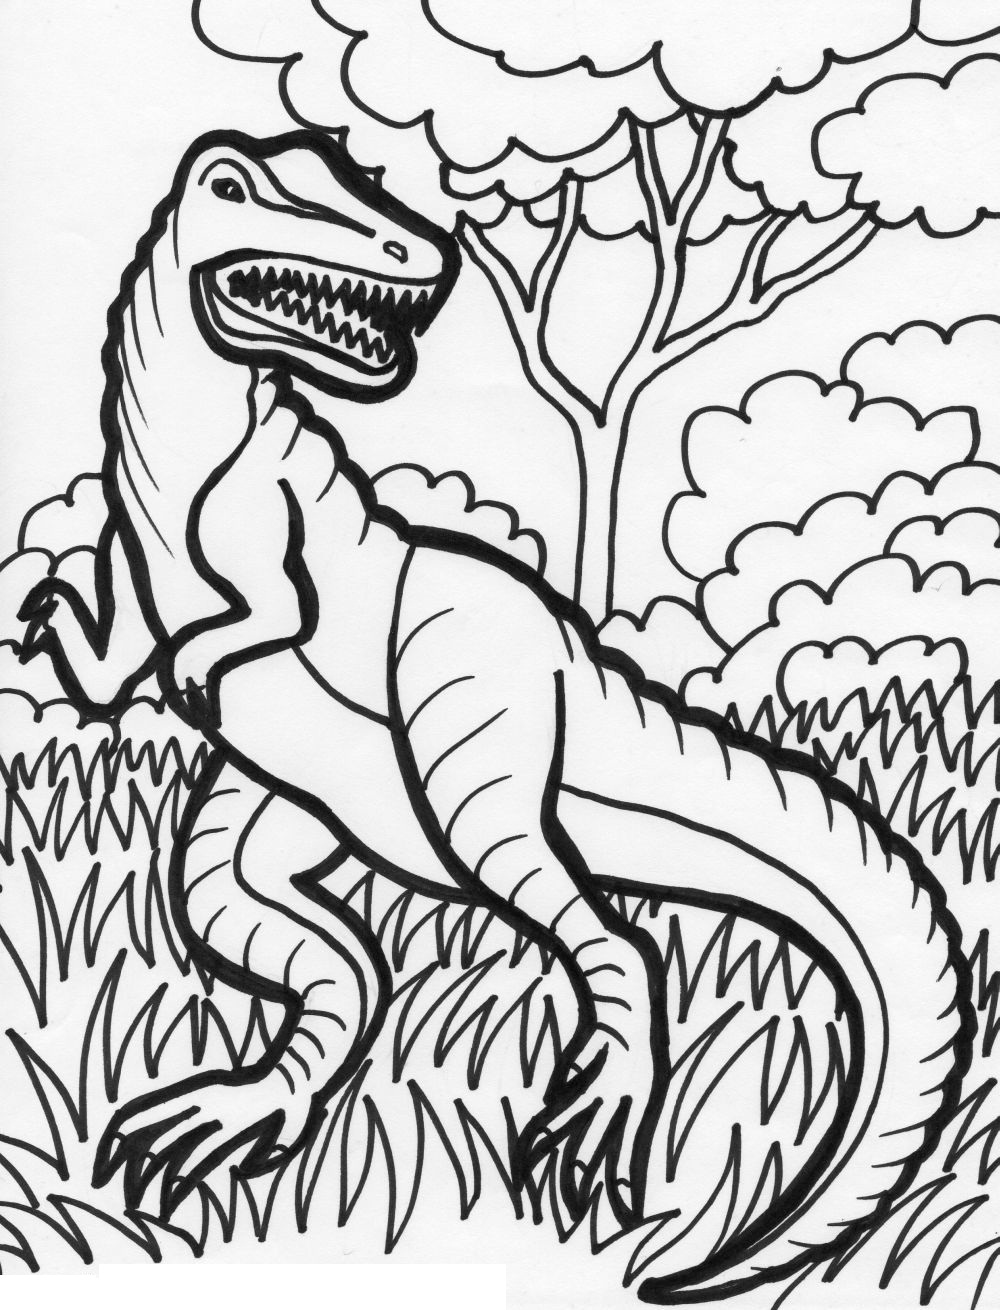 dinasaur coloring pages - photo#34